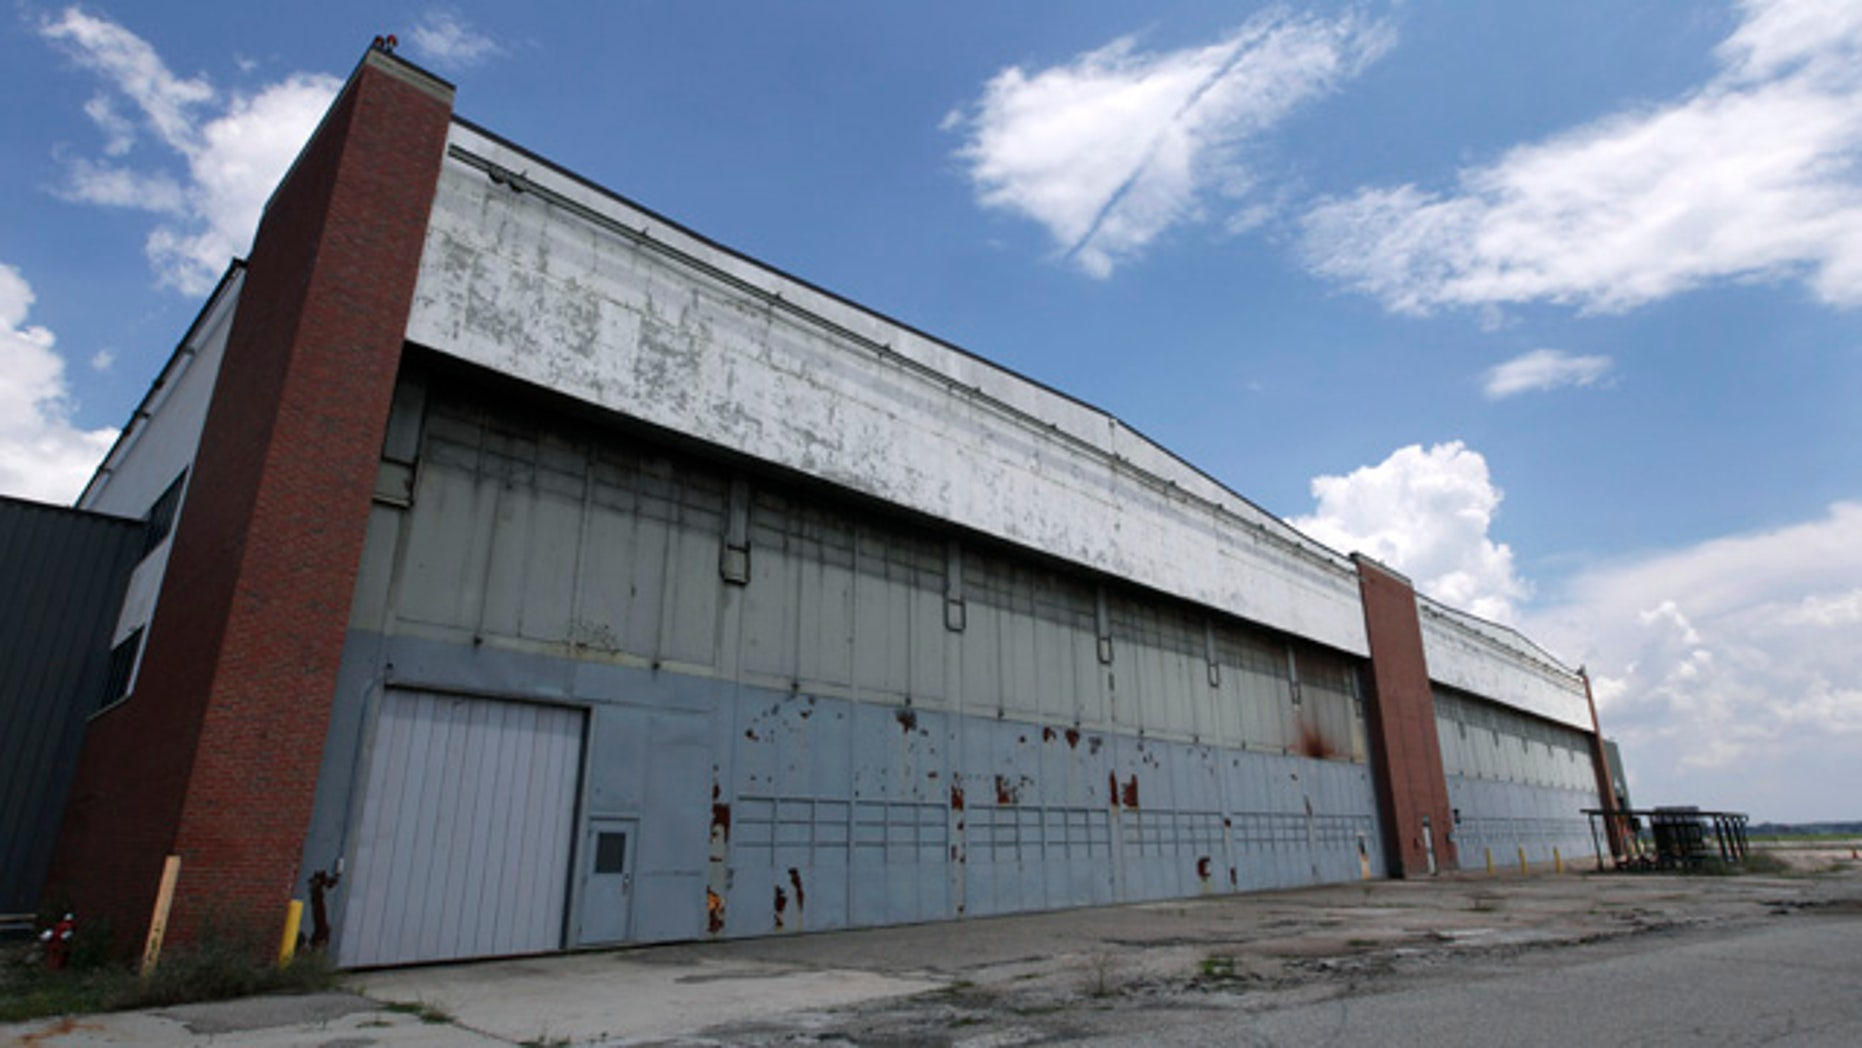 July 17, 2013: Part of the former Willow Run Bomber Plant stands in Ypsilanti Township, Mich. A group wants to preserve a portion of the plant and house a museum there dedicated to aviation and the countless Rosies across the country. Save the Bomber Plant officials have until May 1, to raise the remainder of the $8 million needed to save the plant from demolition. (AP Photo/Paul Sancya, File)